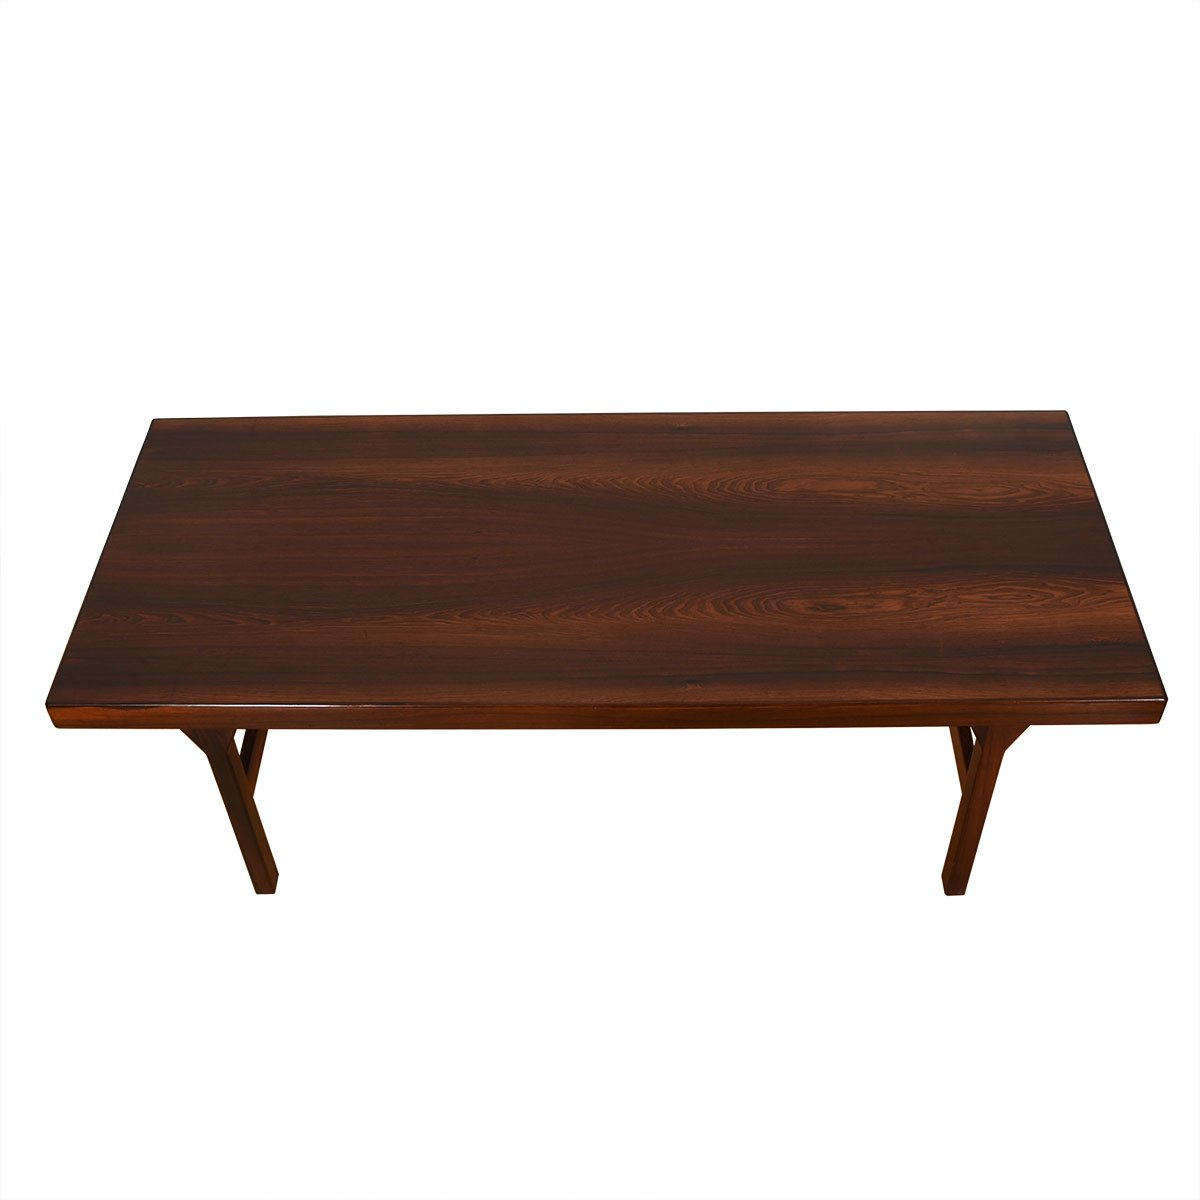 Danish Modern Rosewood Coffee Table w/ Expanding Shelf